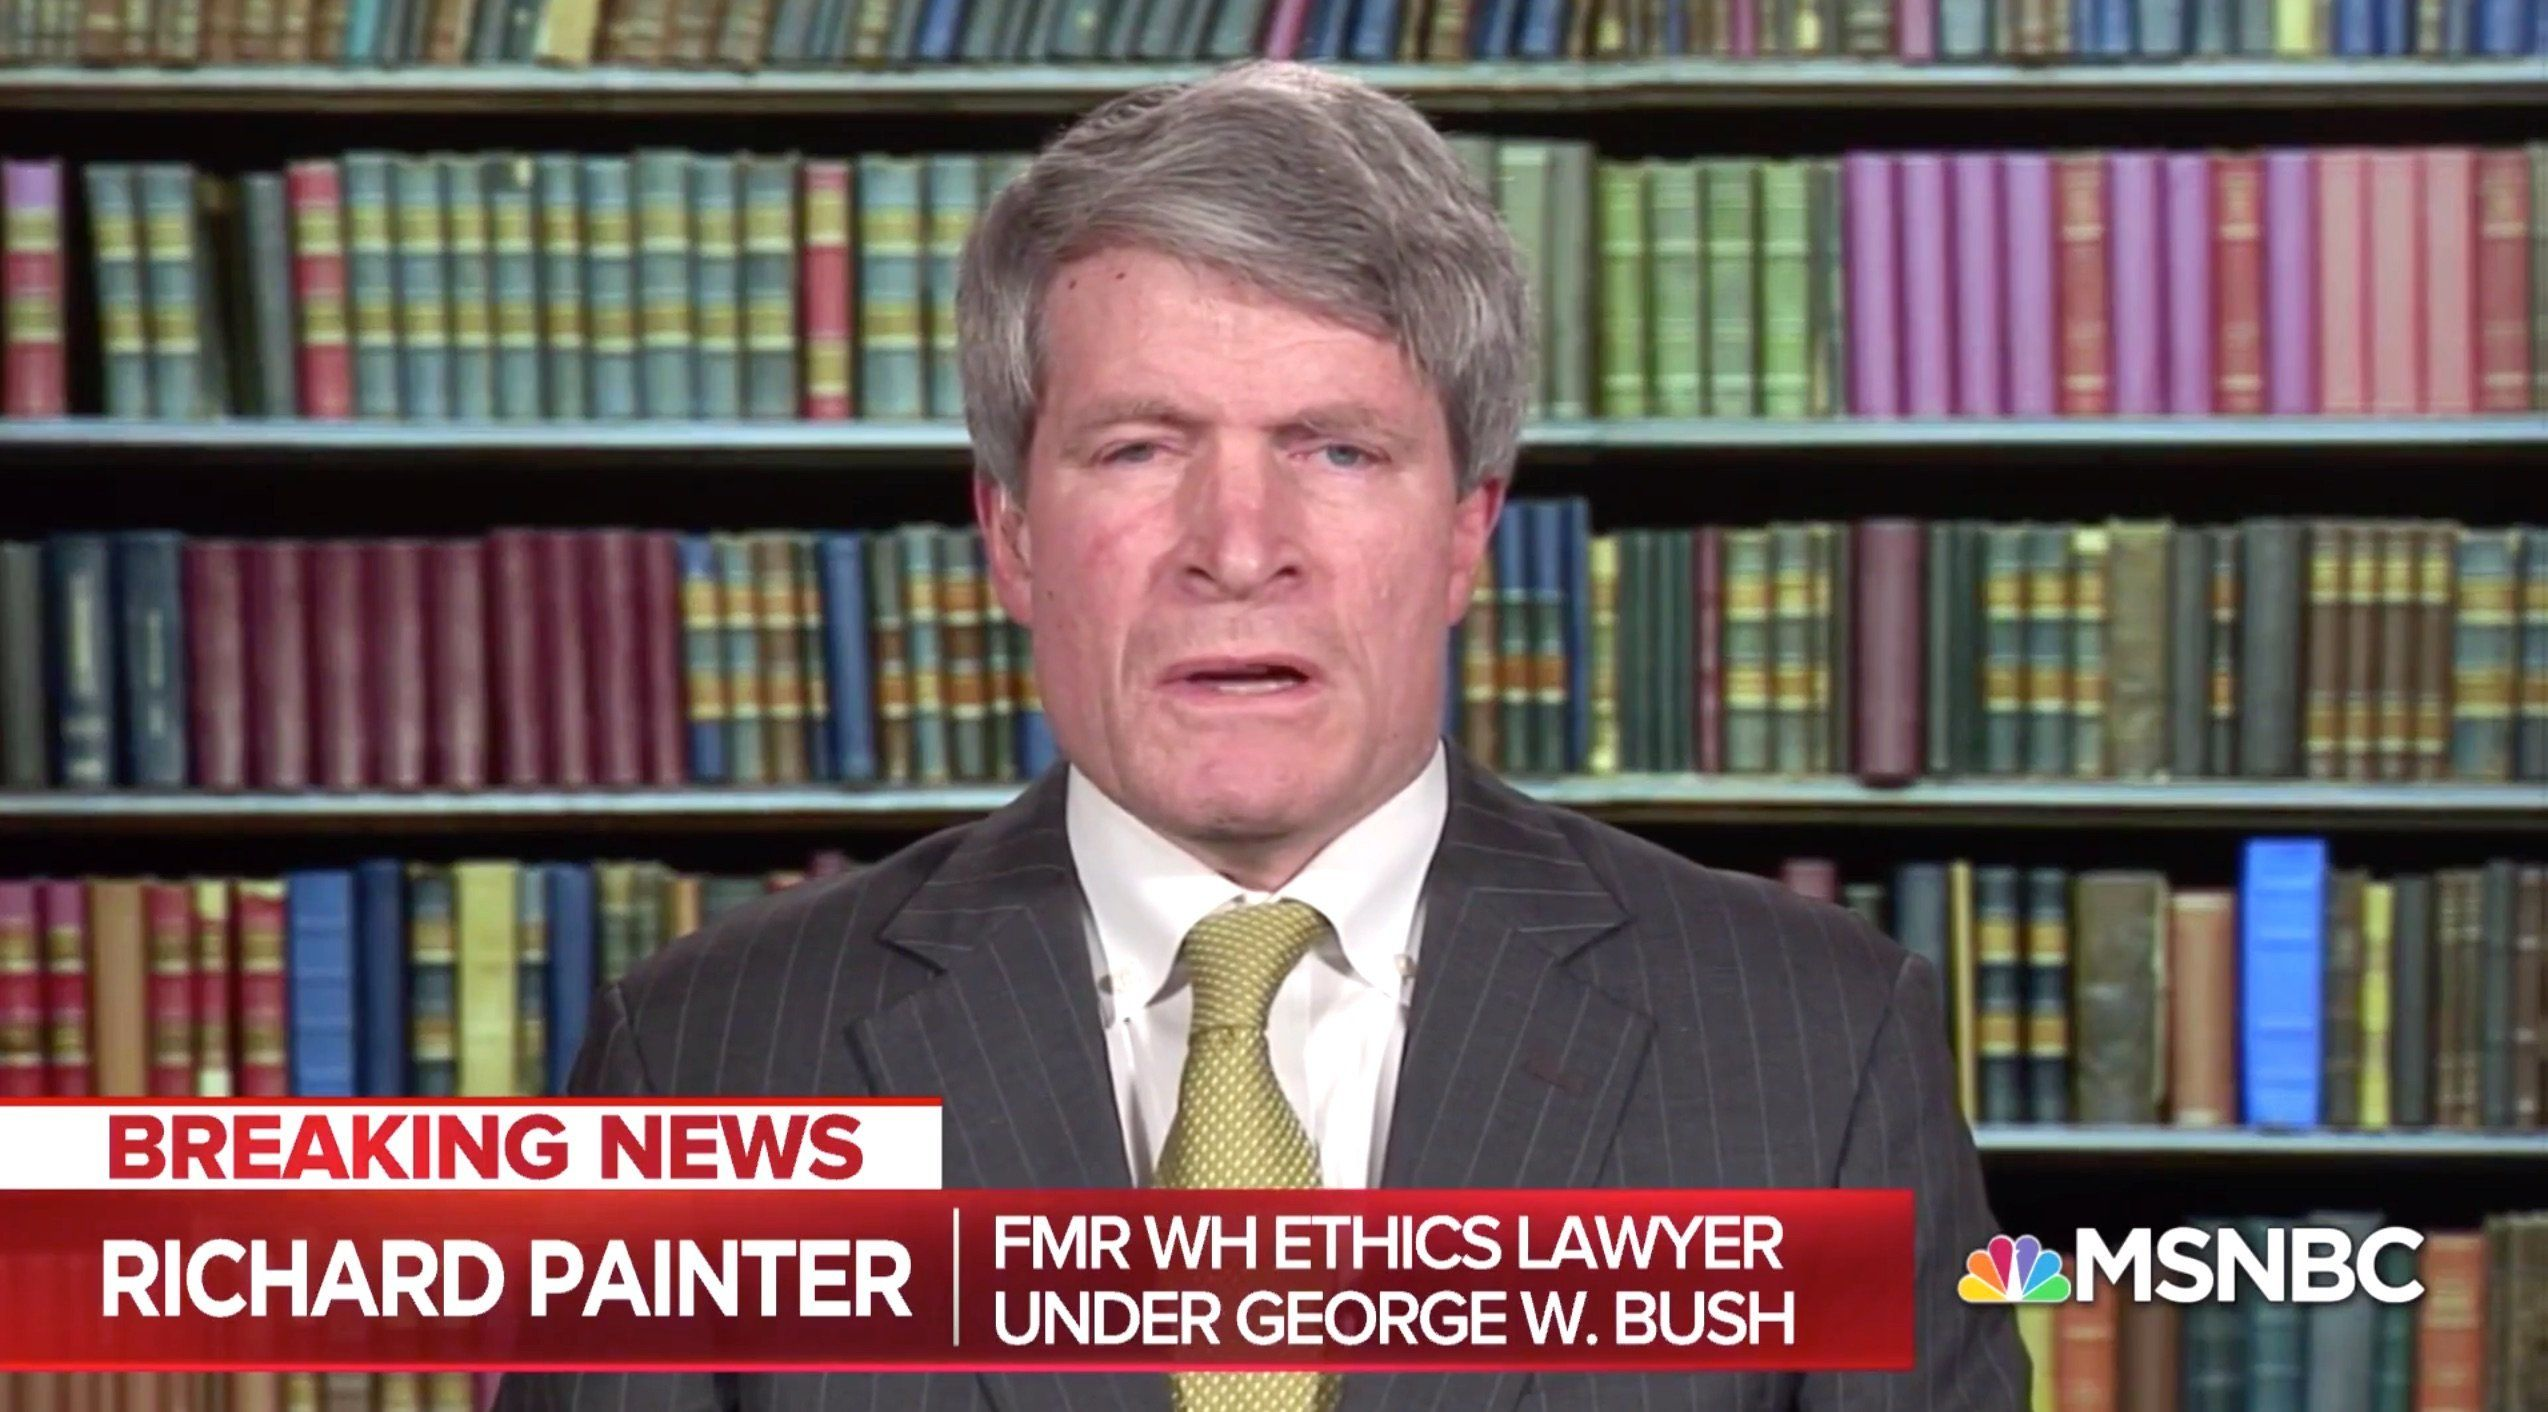 Former Bush Ethics Attorney Richard Painter Says There's Only 1 Way Out For Trump Now